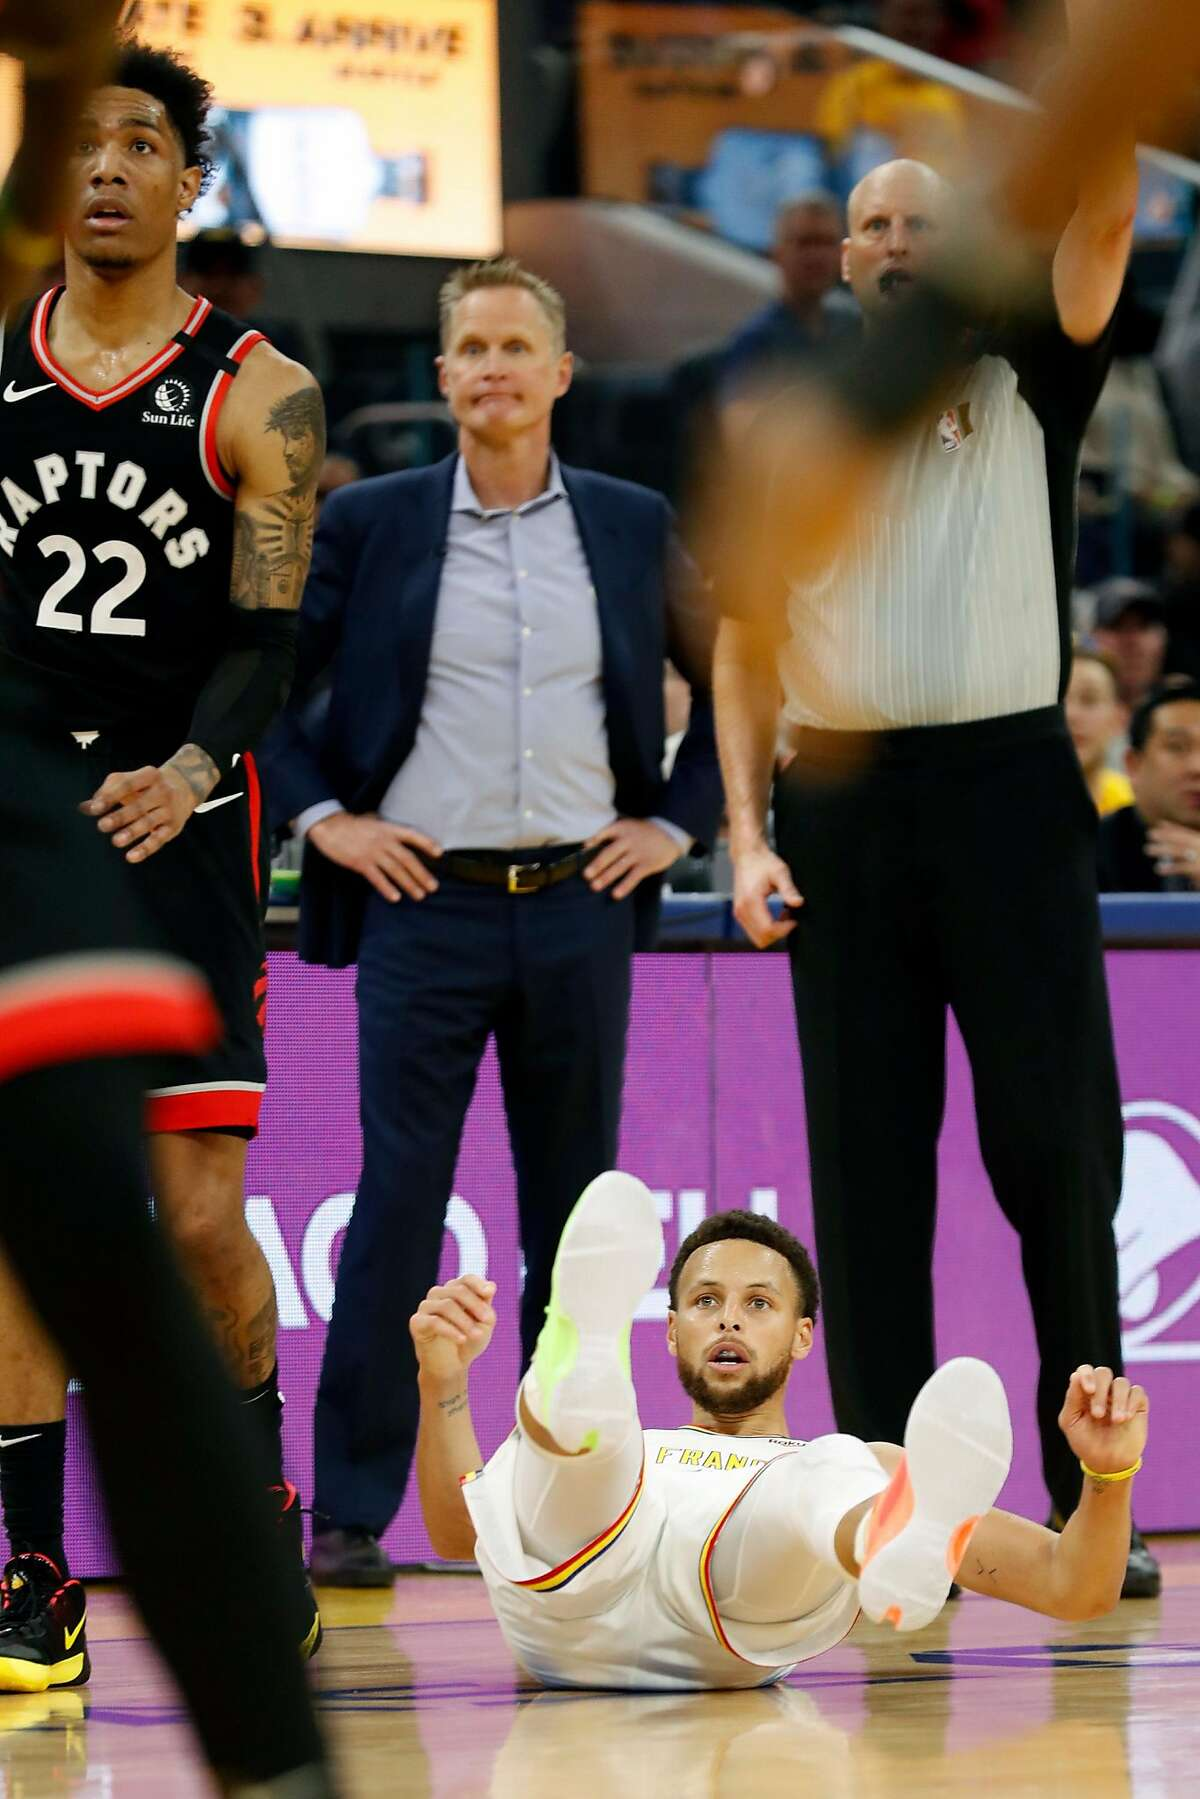 Golden State Warriors' Stephen Curry watches a missed shot from his back against Toronto Raptors' Patrick McCaw during NBA game at Chase Center in San Francisco, Calif., on Thursday, March 5, 2020.